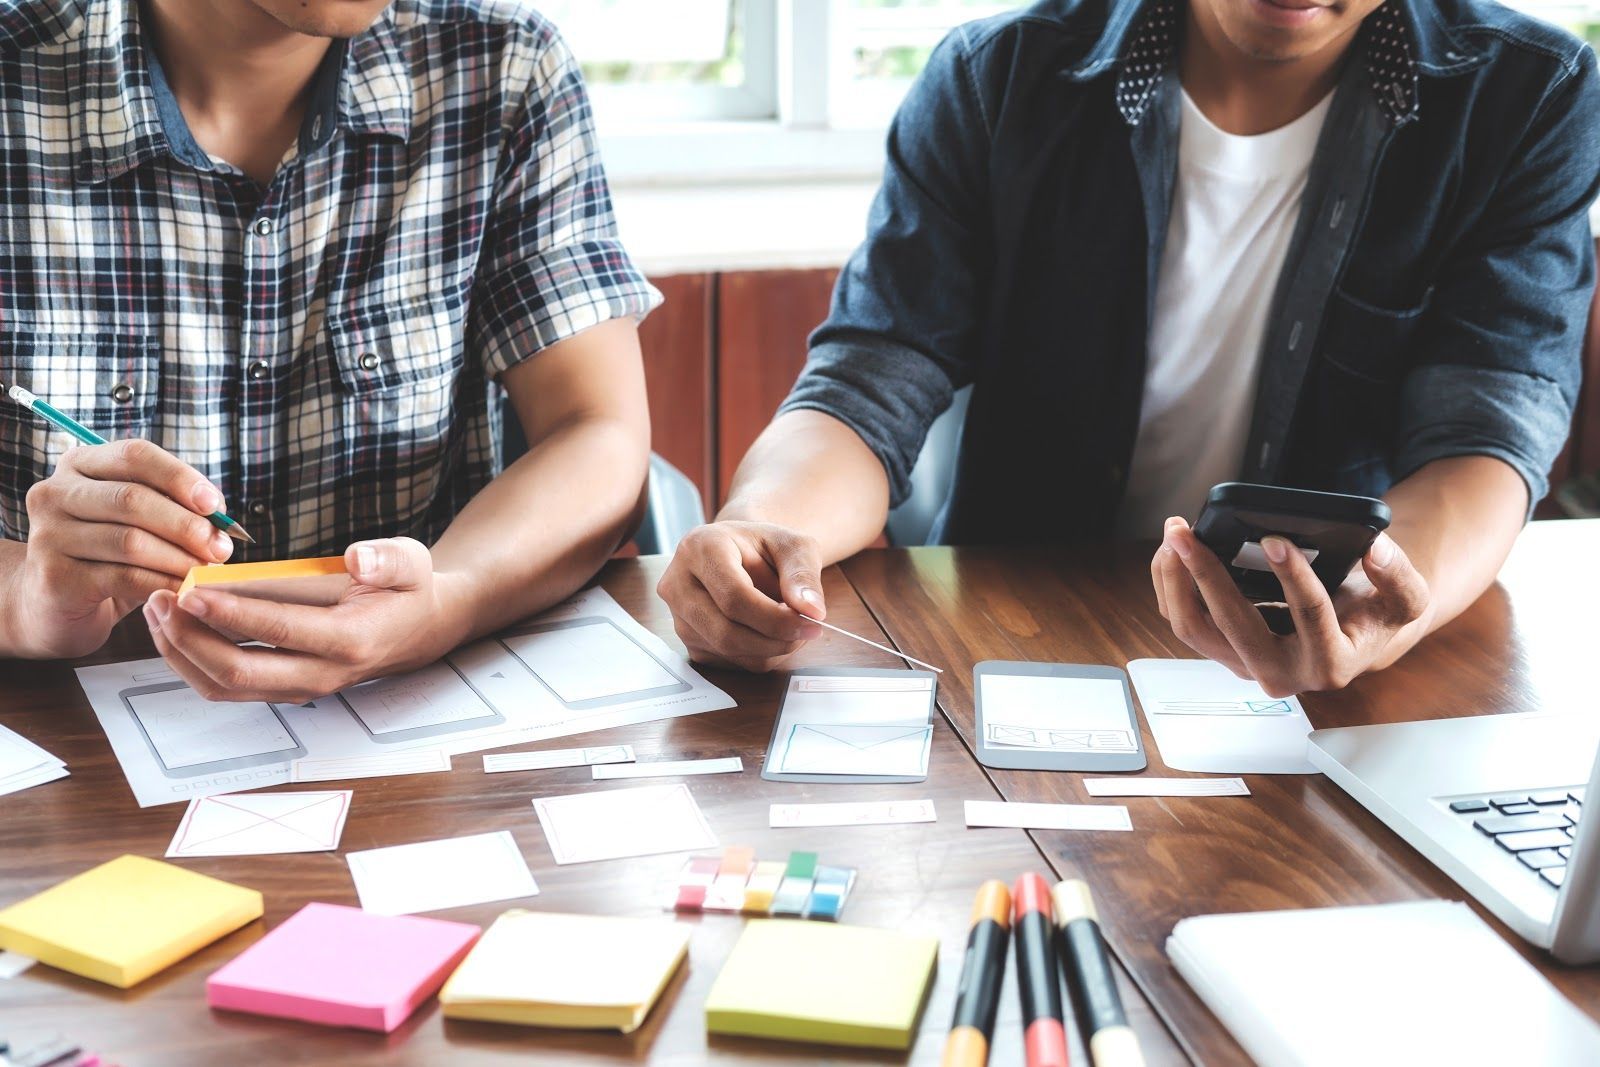 creativity and collaboration in the workplace